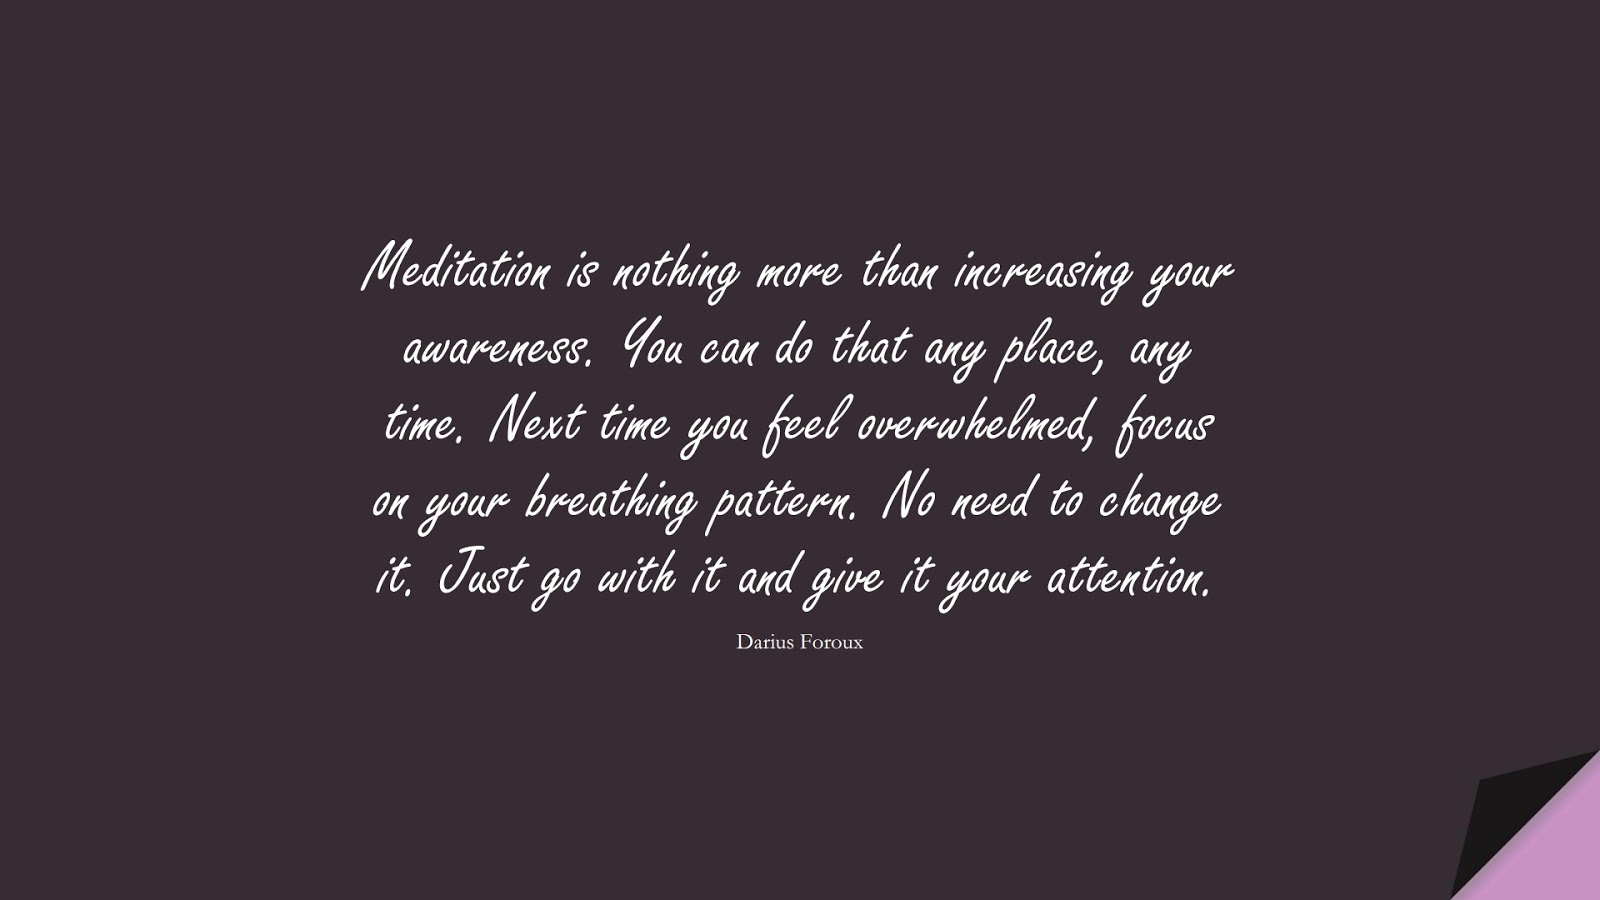 Meditation is nothing more than increasing your awareness. You can do that any place, any time. Next time you feel overwhelmed, focus on your breathing pattern. No need to change it. Just go with it and give it your attention. (Darius Foroux);  #StressQuotes